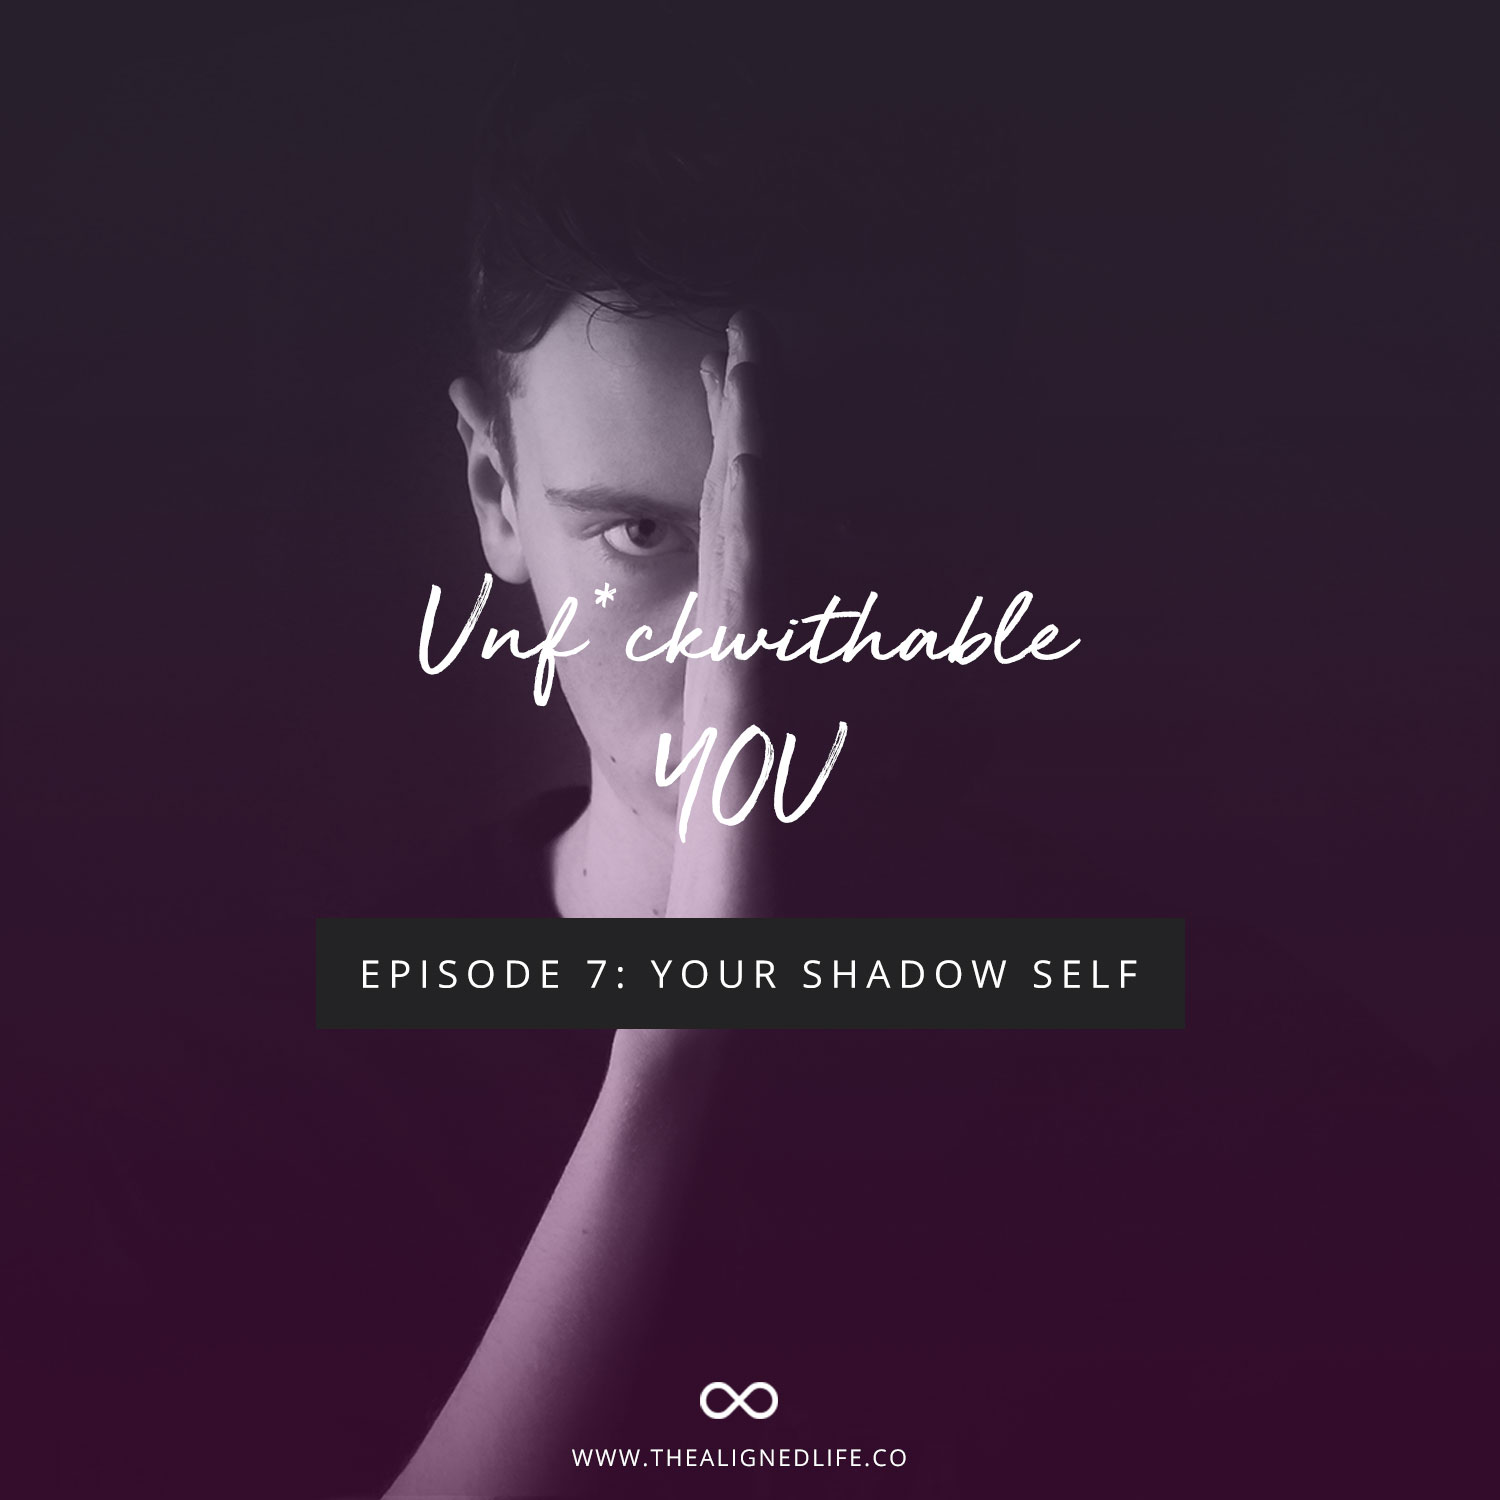 Unf*ckwithable You Episode 7: Your Shadow Self